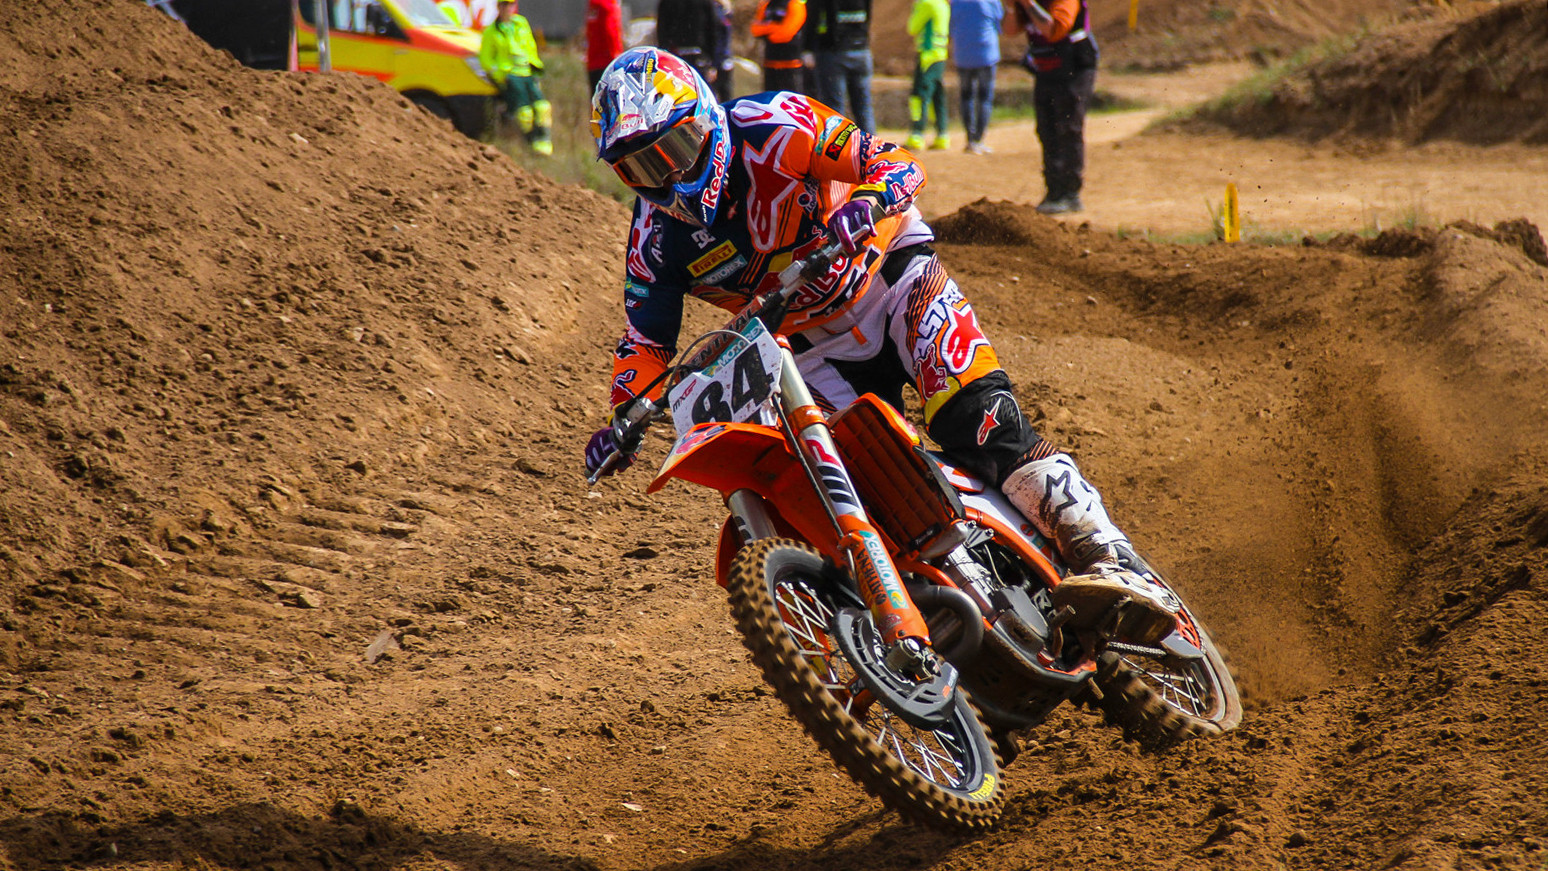 Official: Jeffrey Herlings to Race the Ironman AMA Pro Motocross National